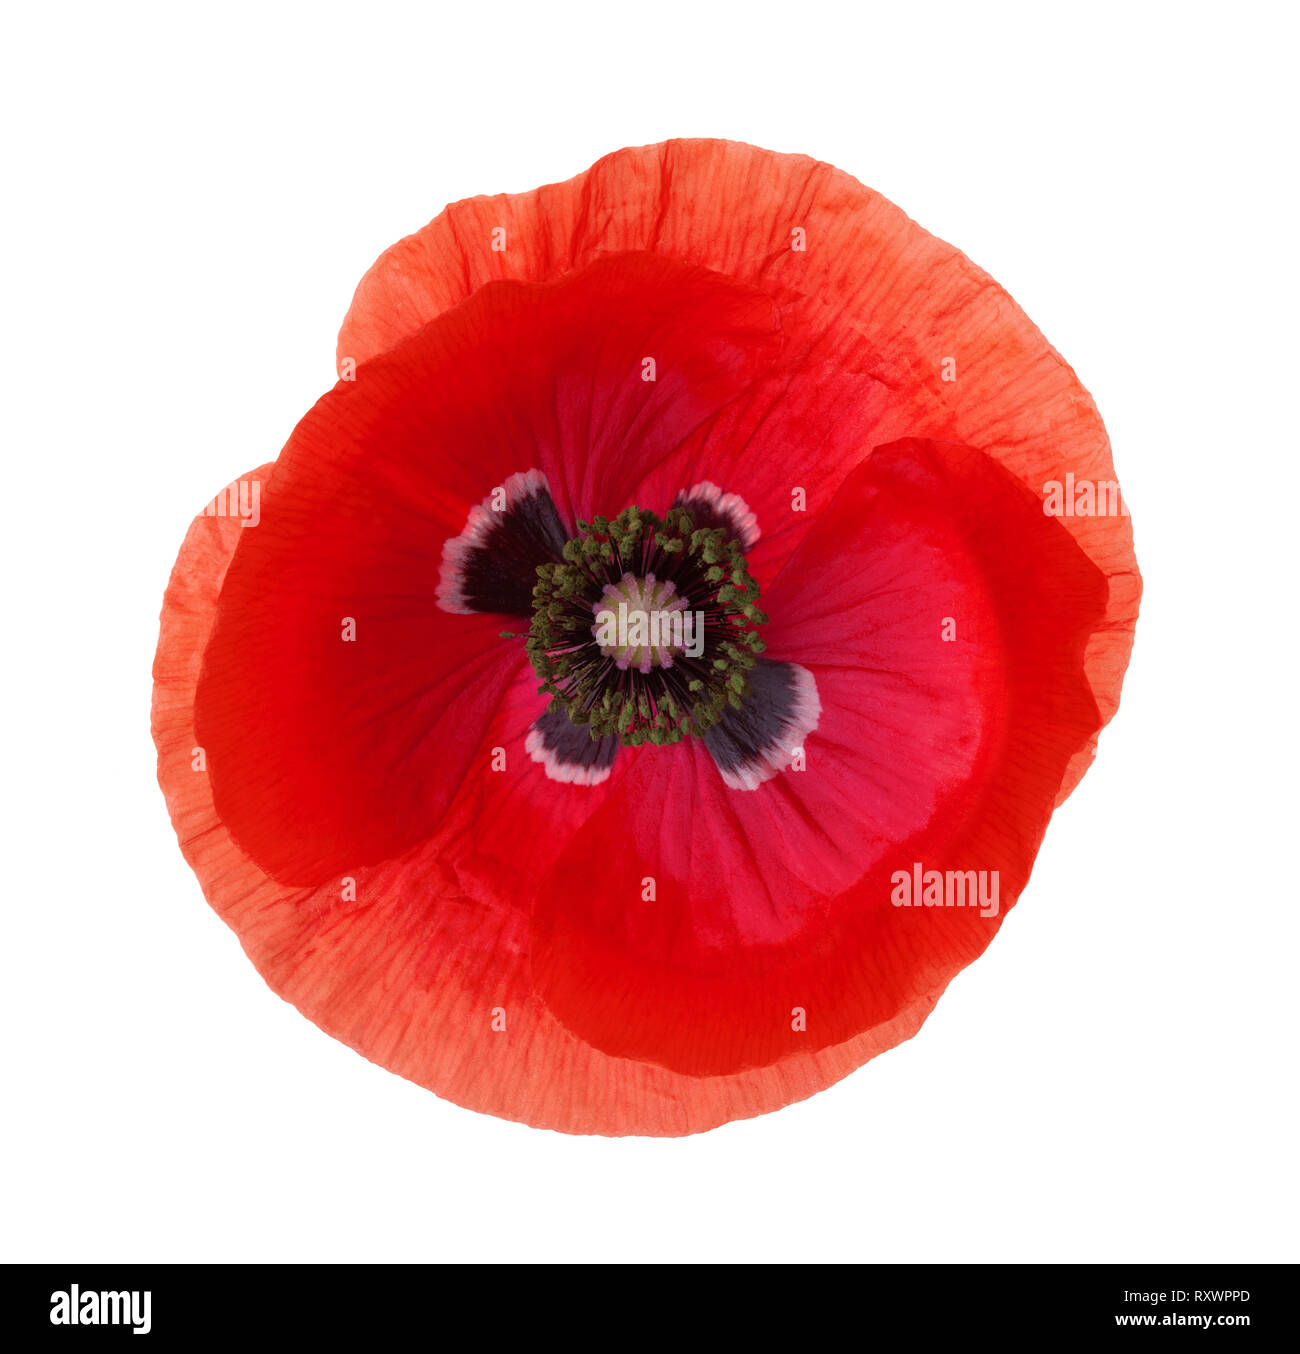 Red Poppy flower isolated on white background. - Stock Image